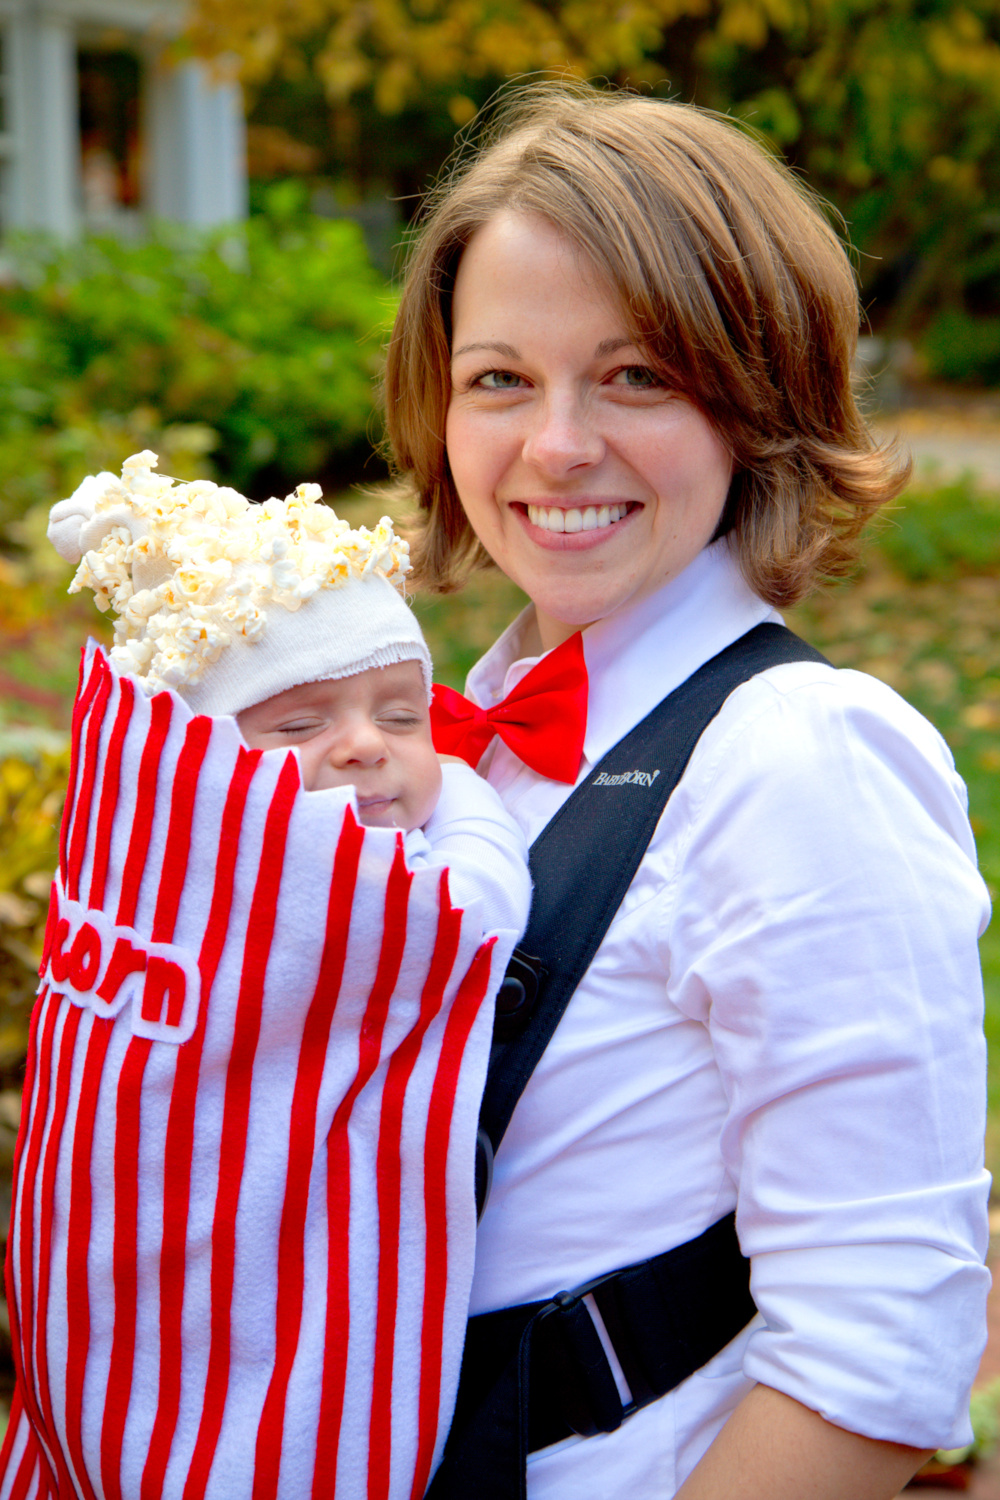 Baby Popcorn and Theater Attendant Costume DIY